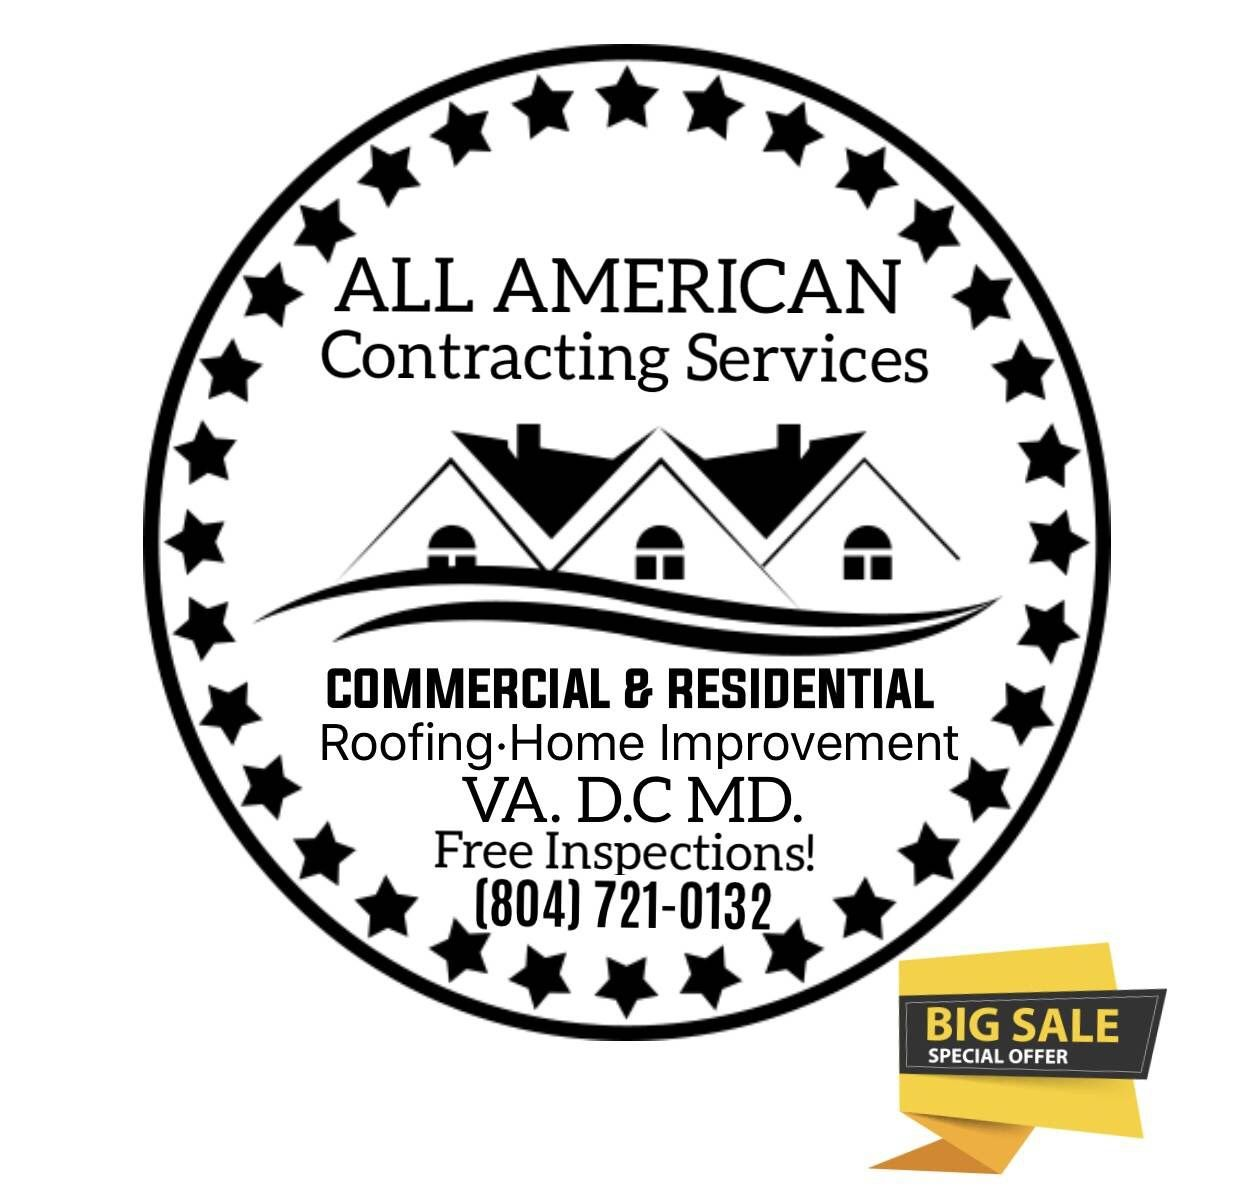 Pin By All American House Pro Llc On All American Roofs And Siding Residential Roofing Roofing Tech Company Logos